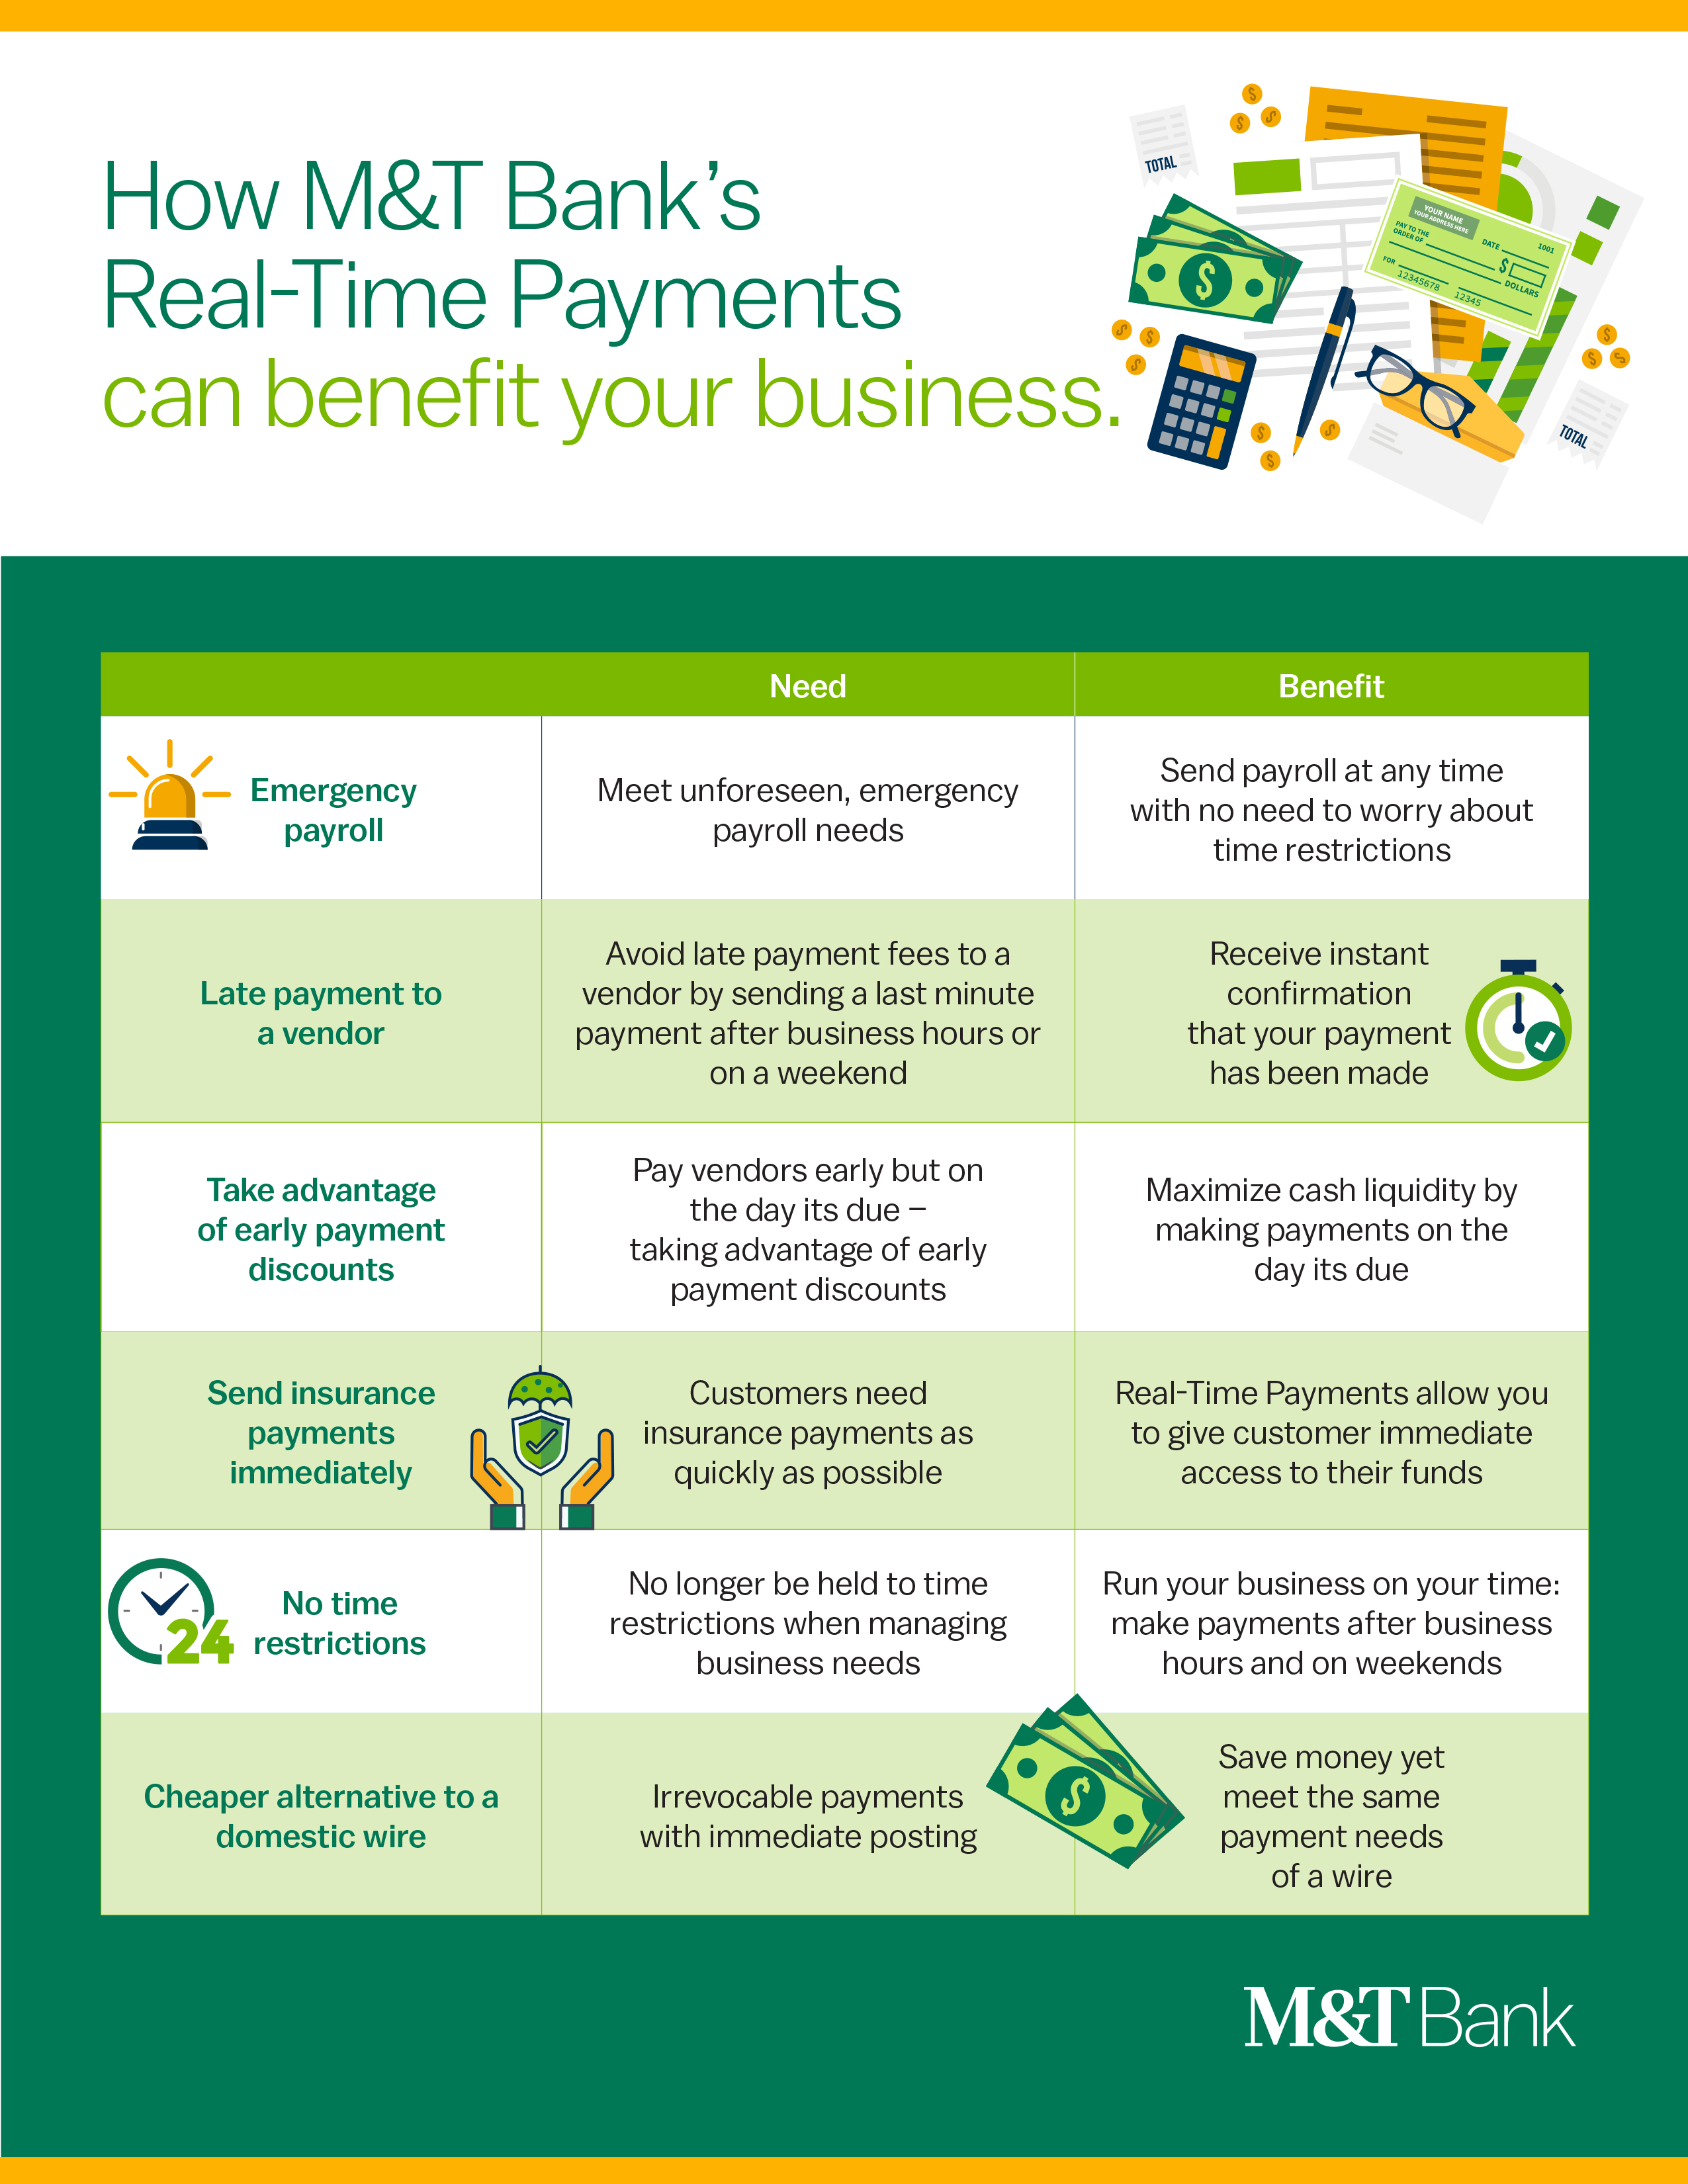 benefits-of-real-time-payments-mt2021.jpg